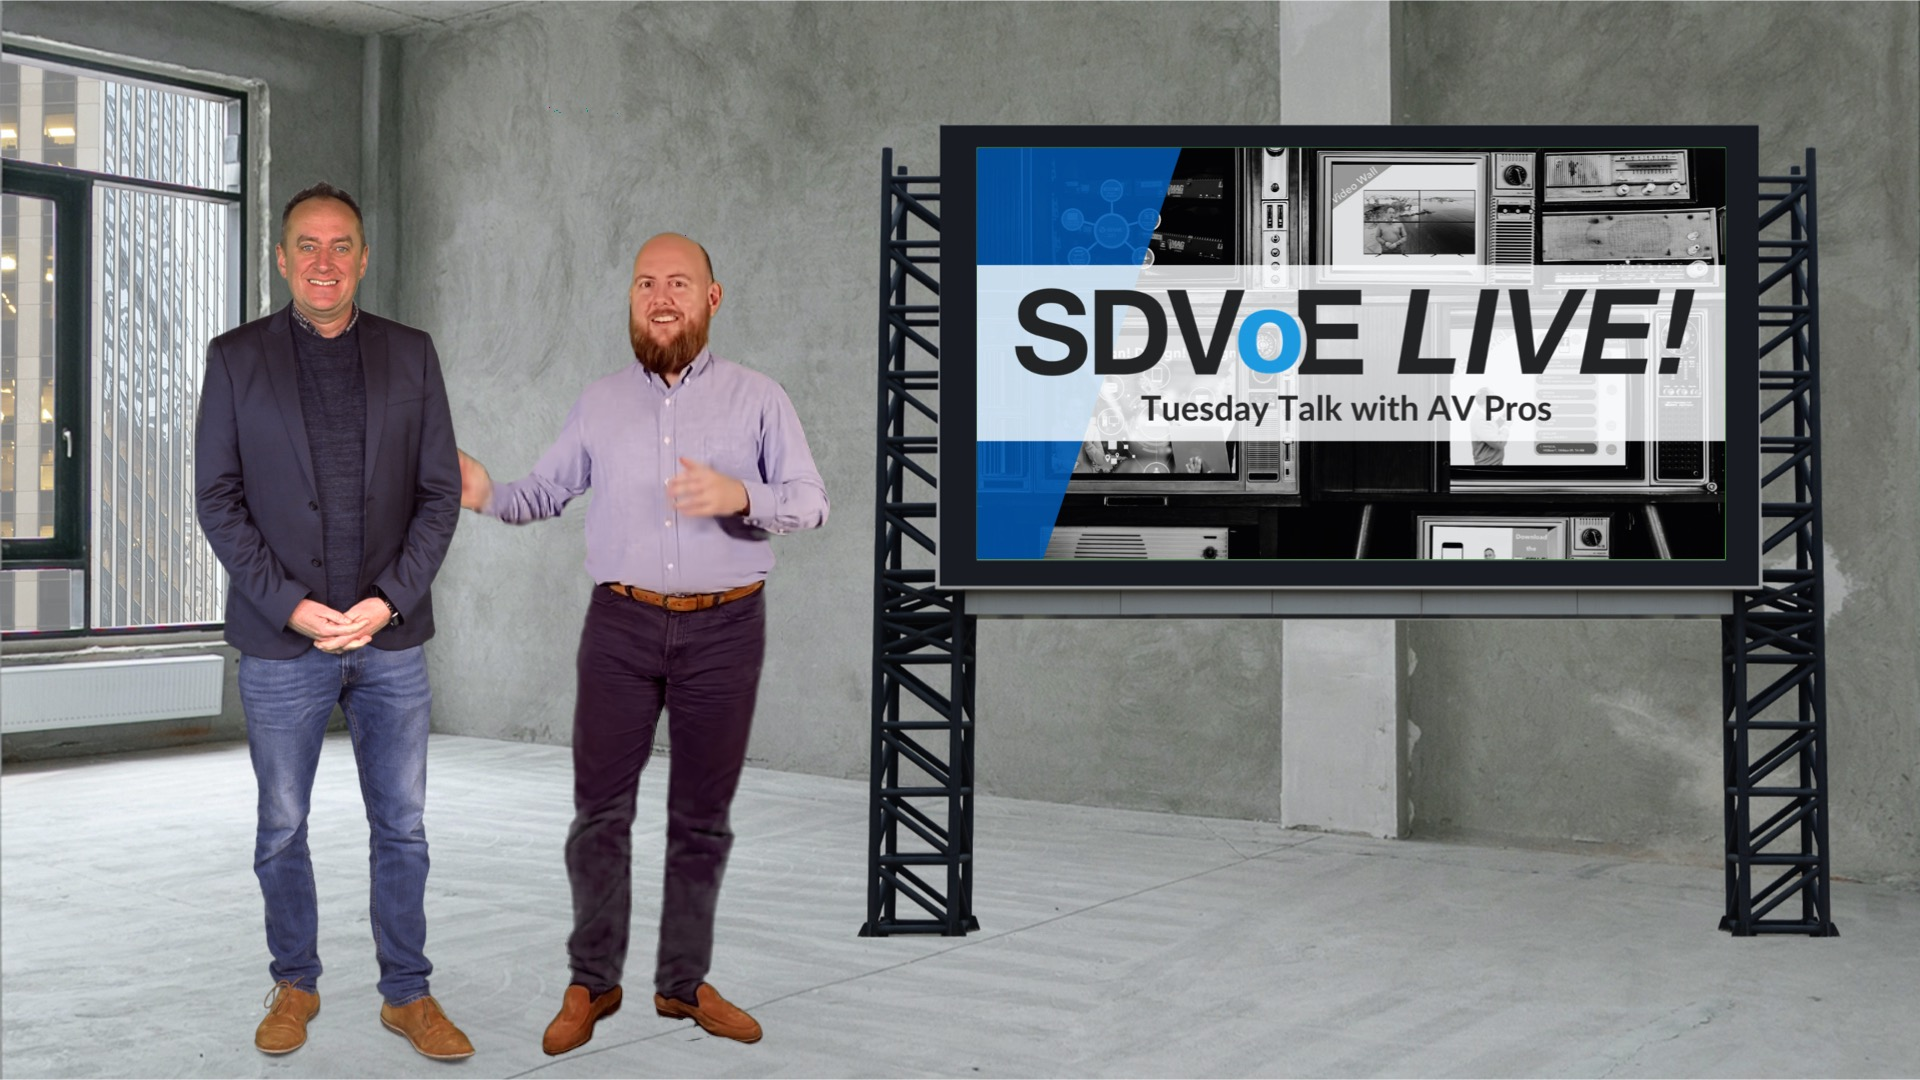 SDVoE LIVE! Episode 11: Practice What You Preach